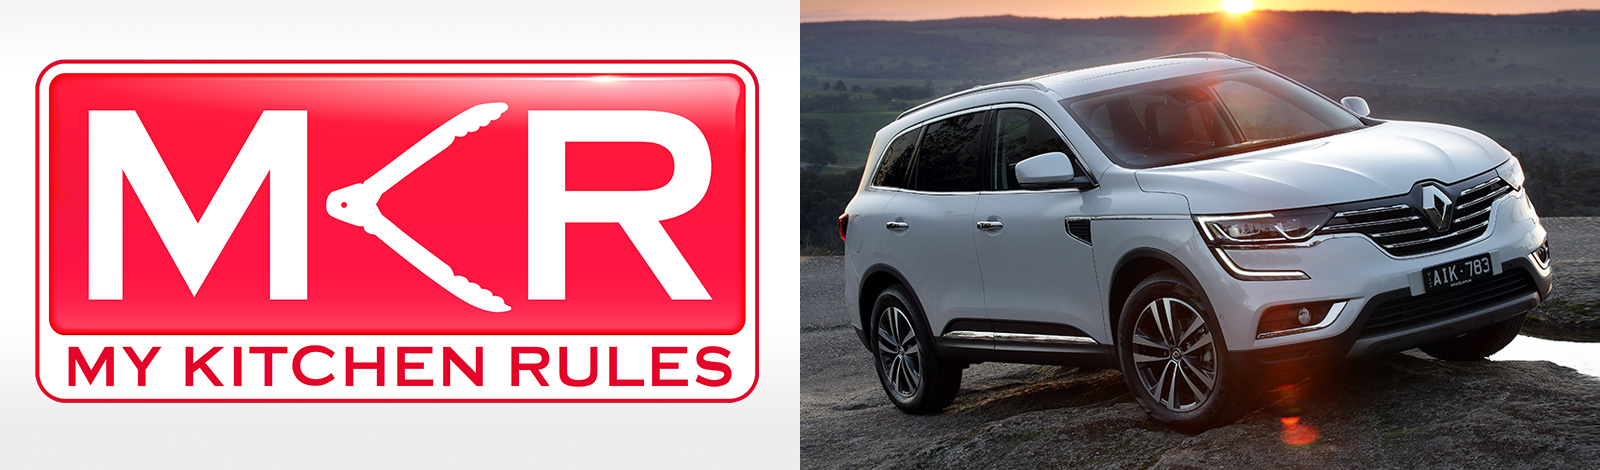 My renault rules in 2018 goautonews premium for Y kitchen rules 2018